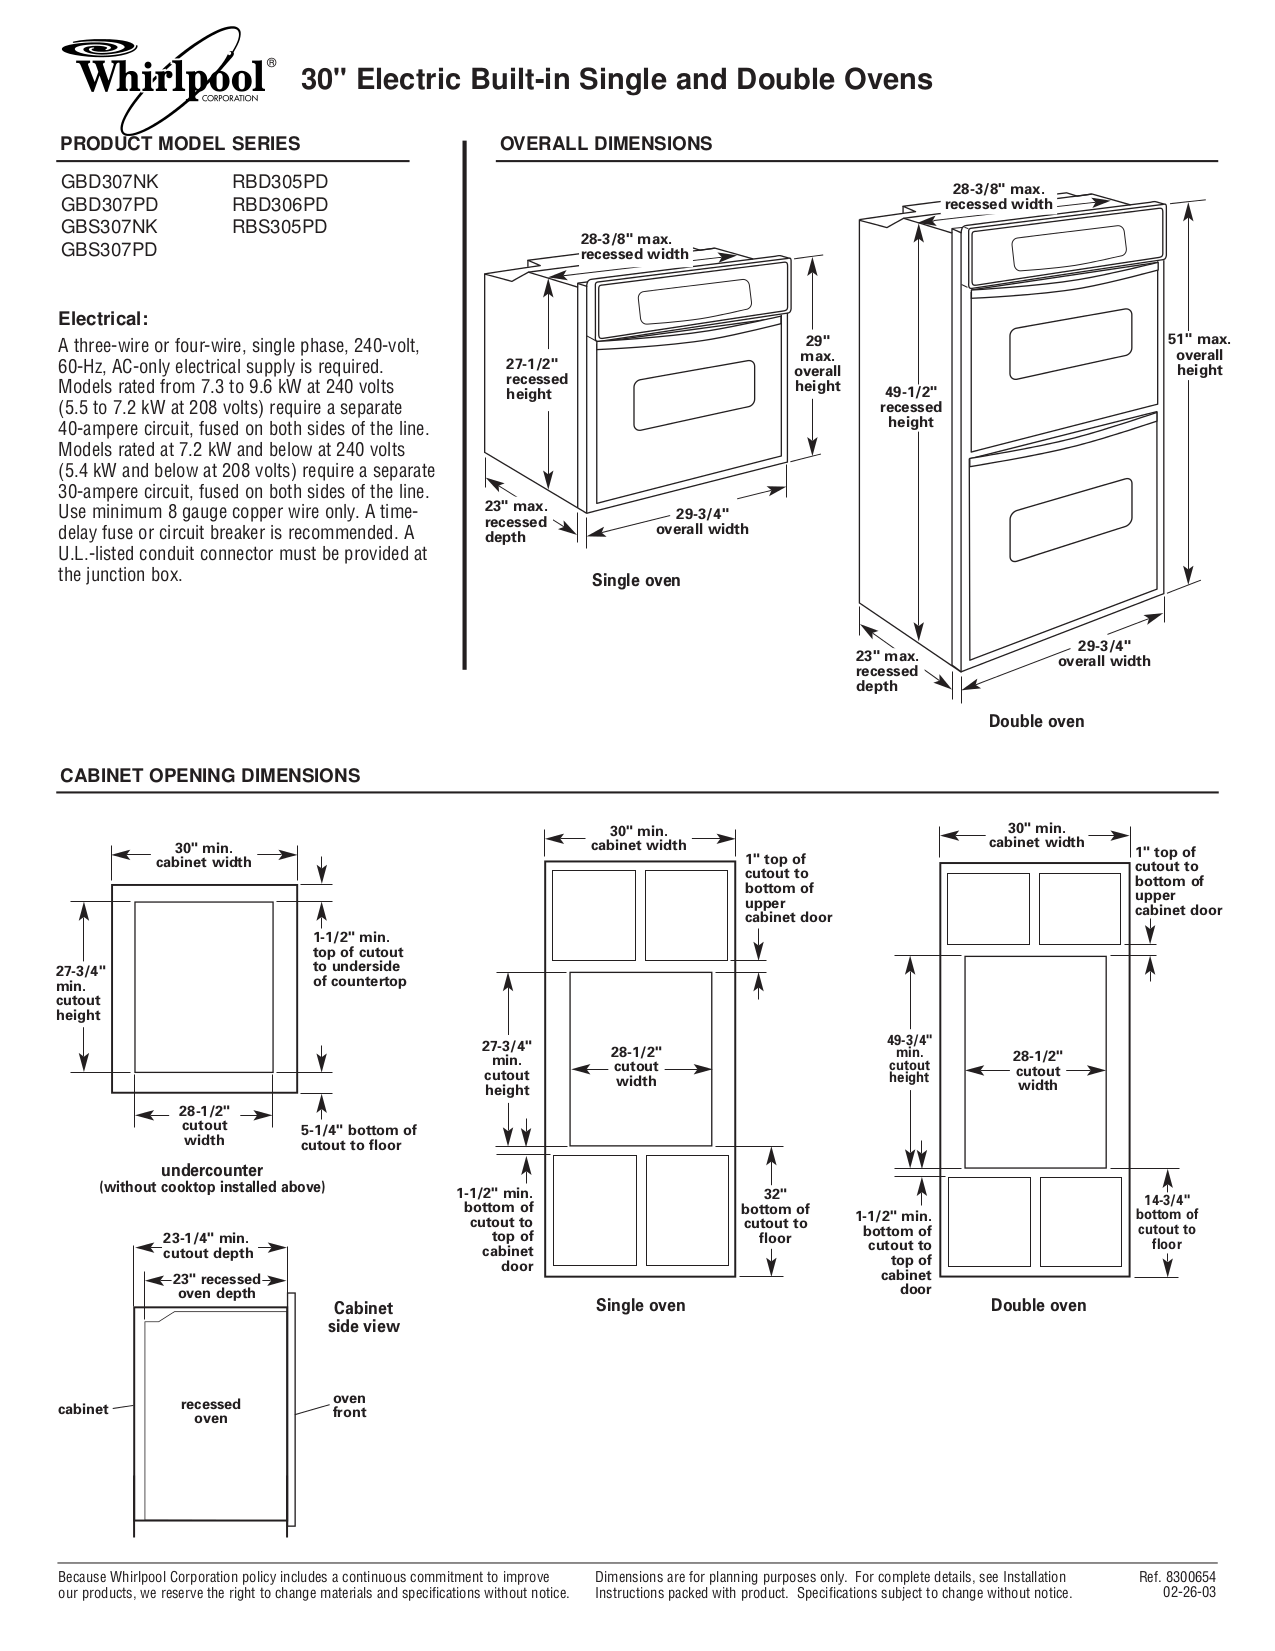 download free pdf for whirlpool rbd306pd oven manual